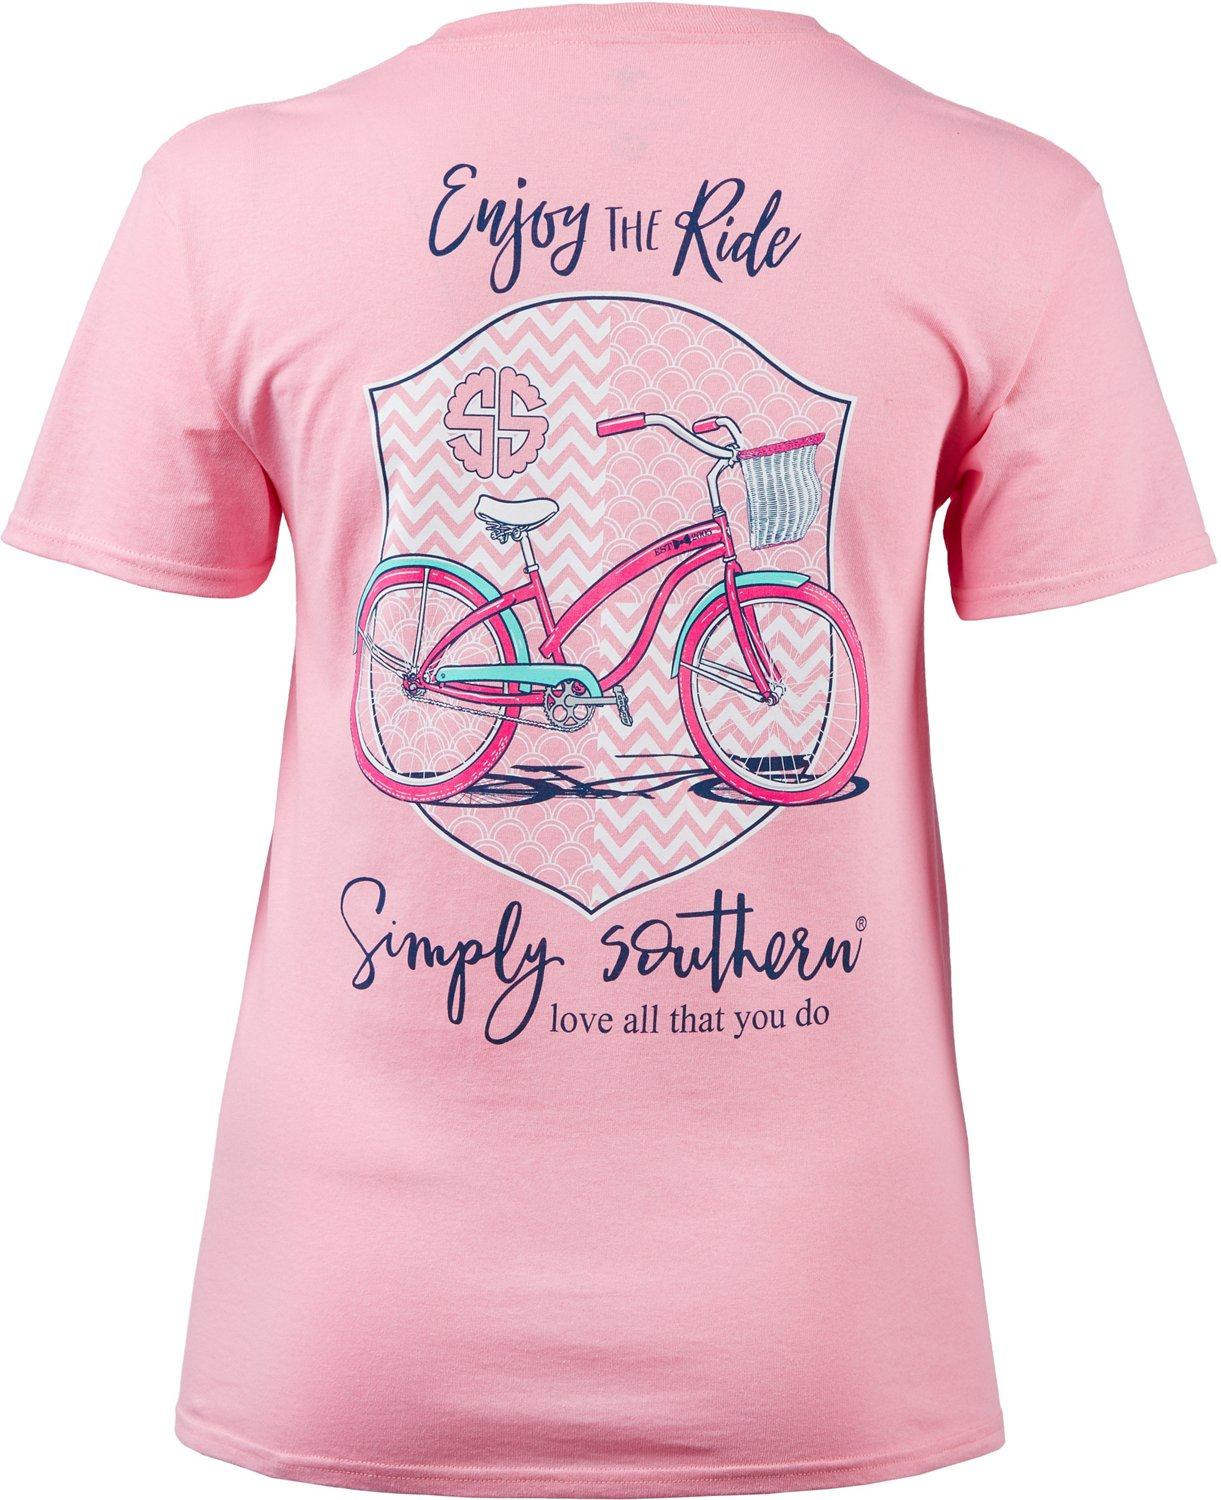 Simply Southern Women's Enjoy the Ride T-shirt - view number 2